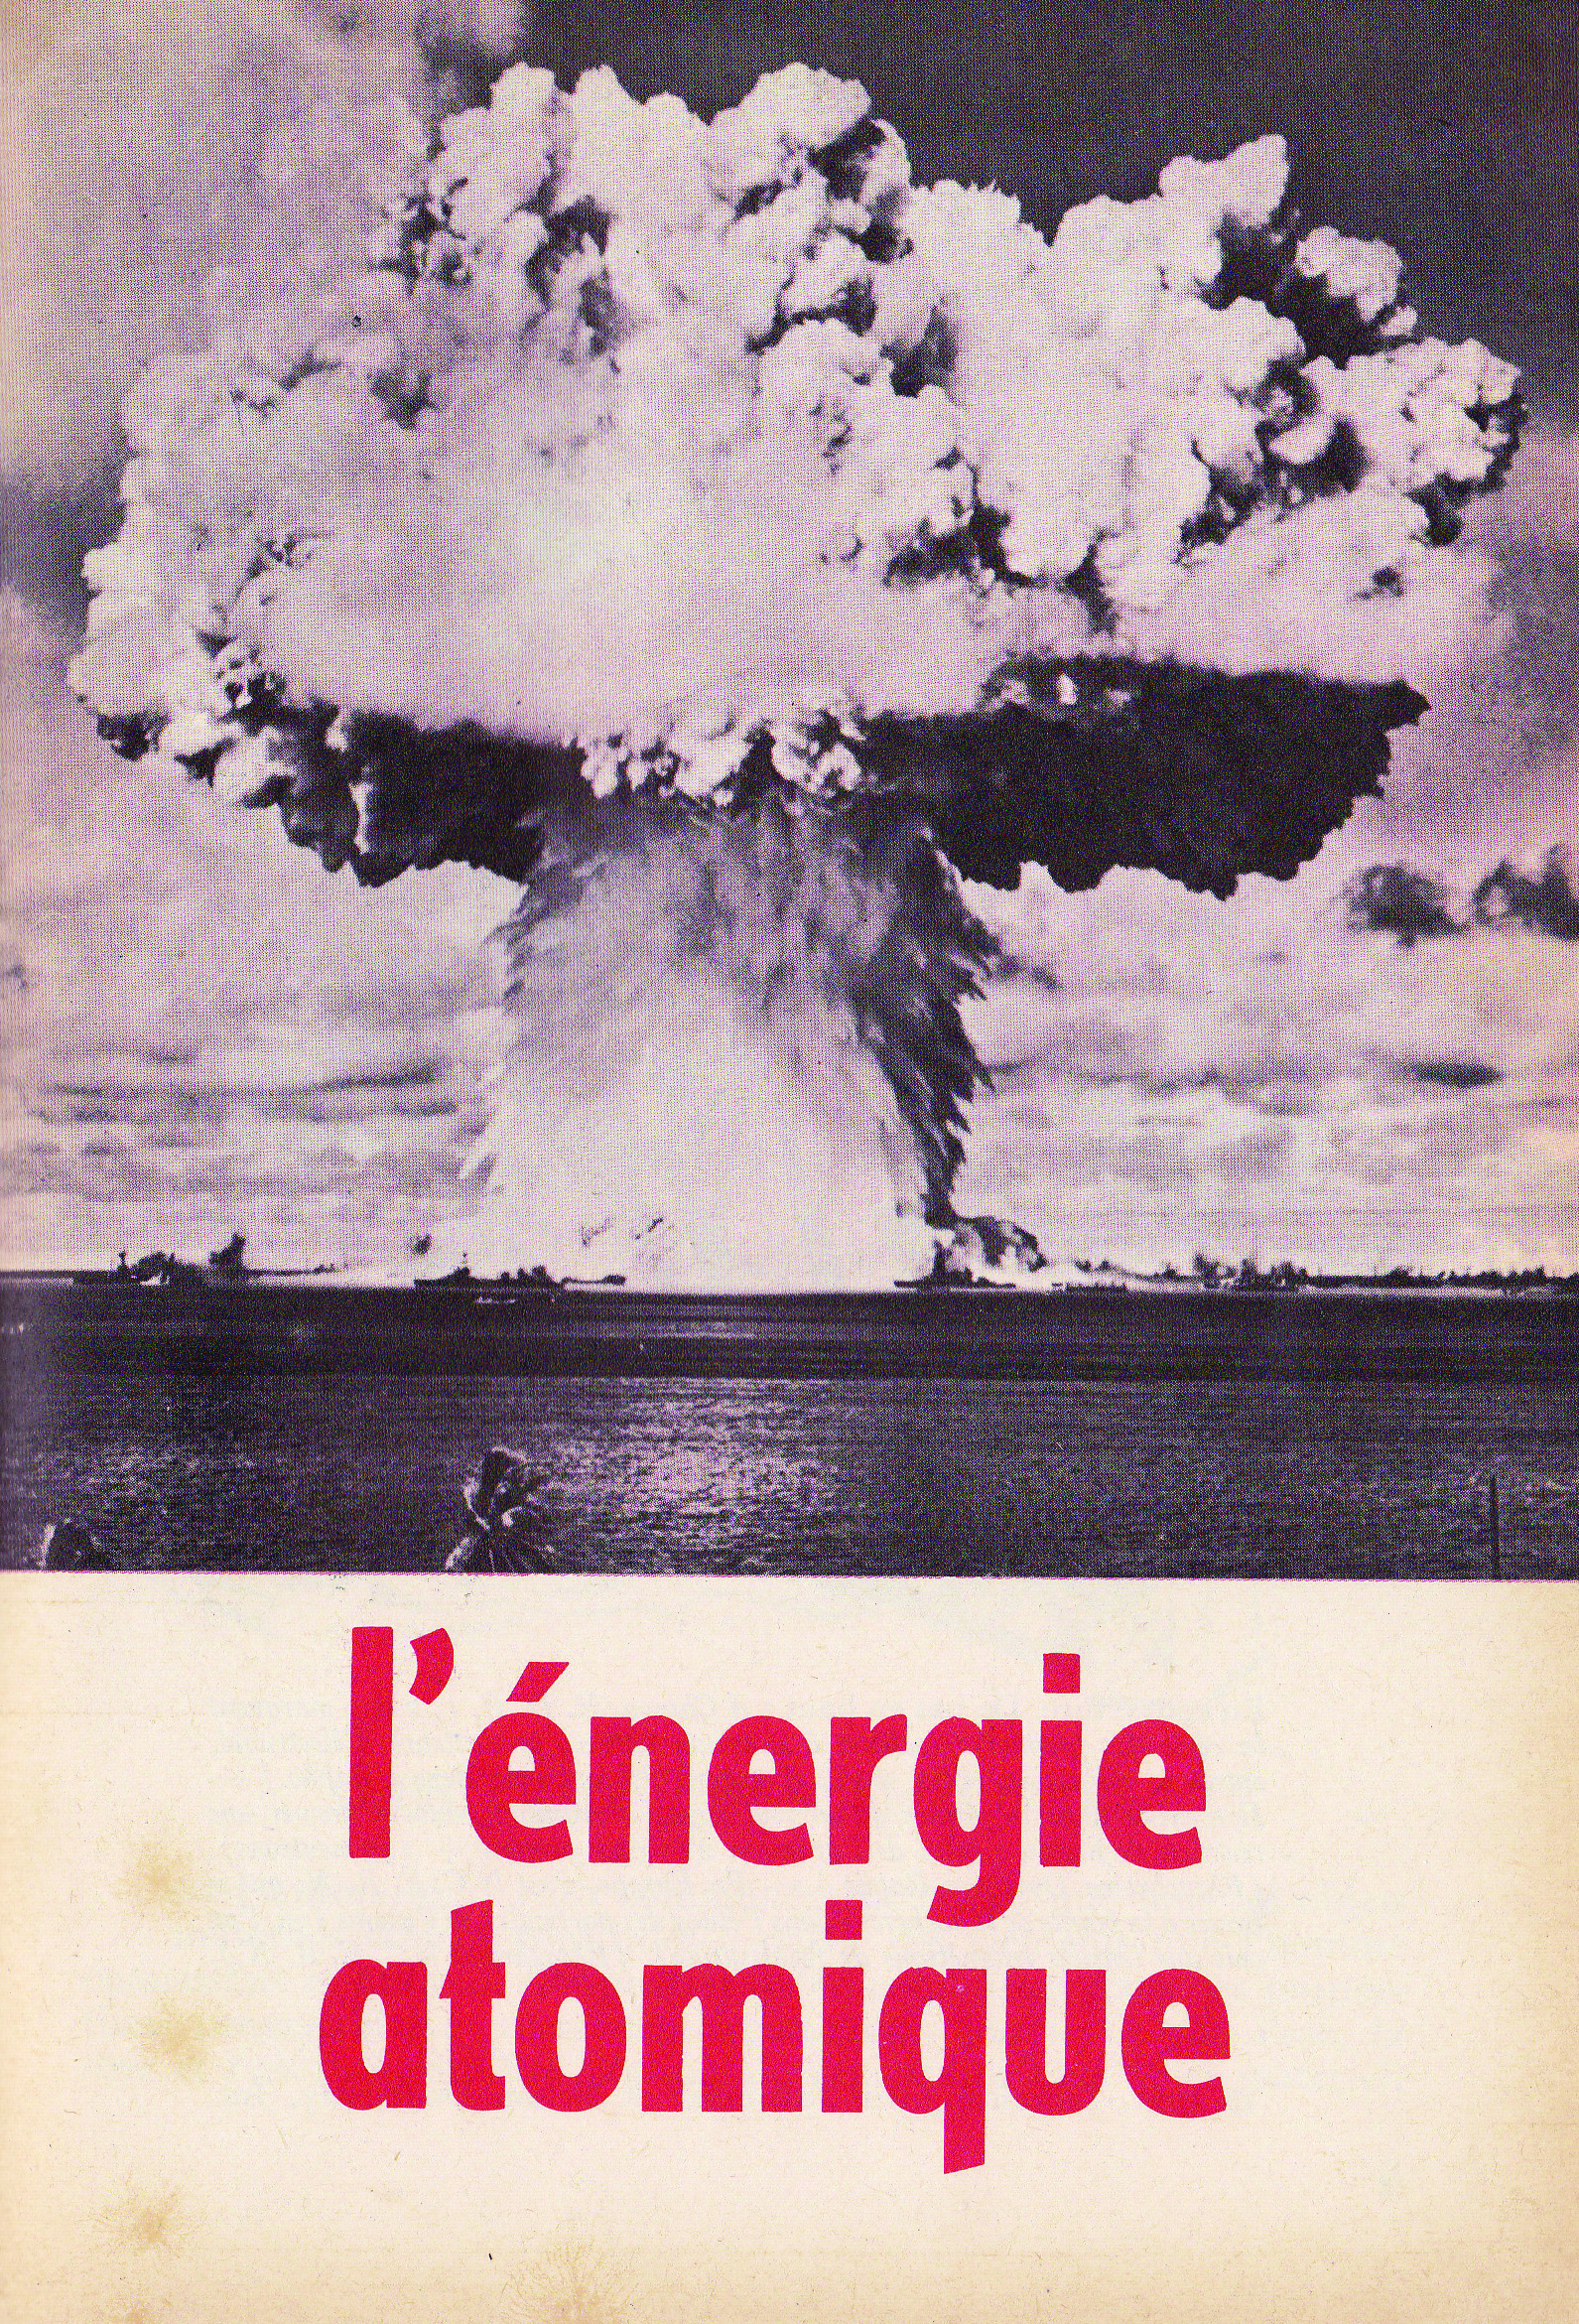 SciencesDuMonde_no97_1971_EnergieAtomique_l energie atomique